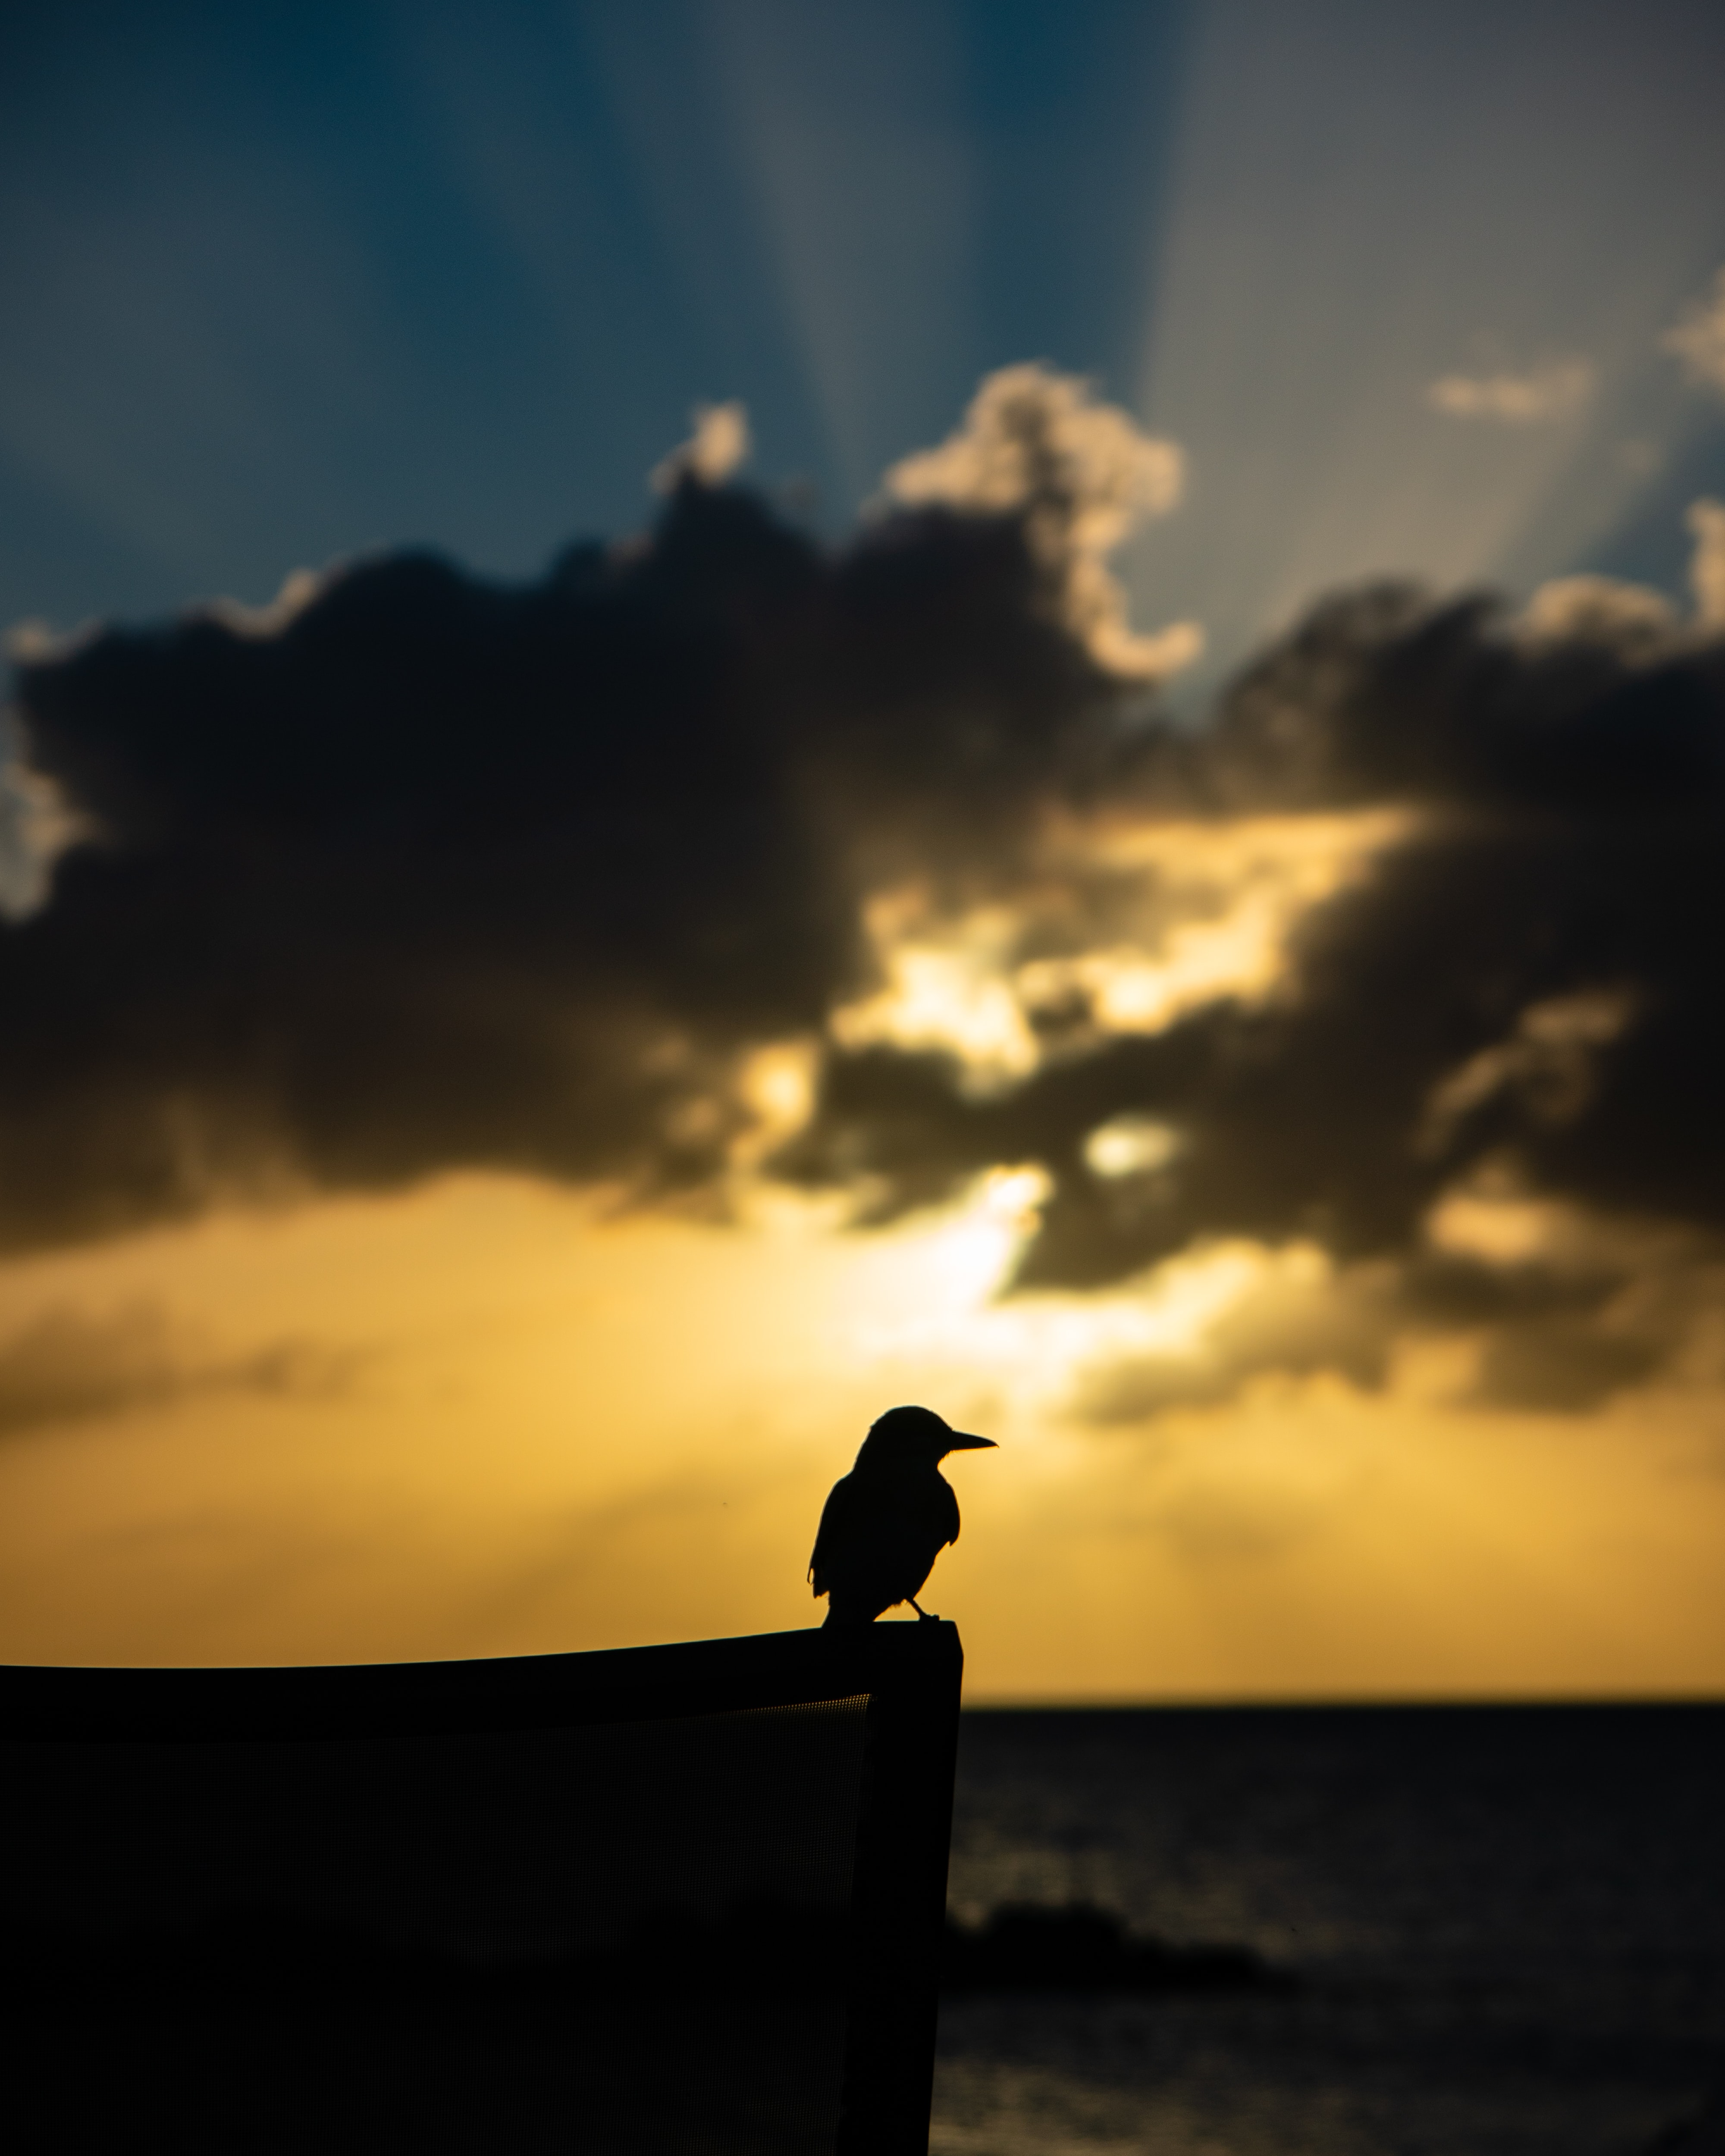 silhouette of bird during daytime